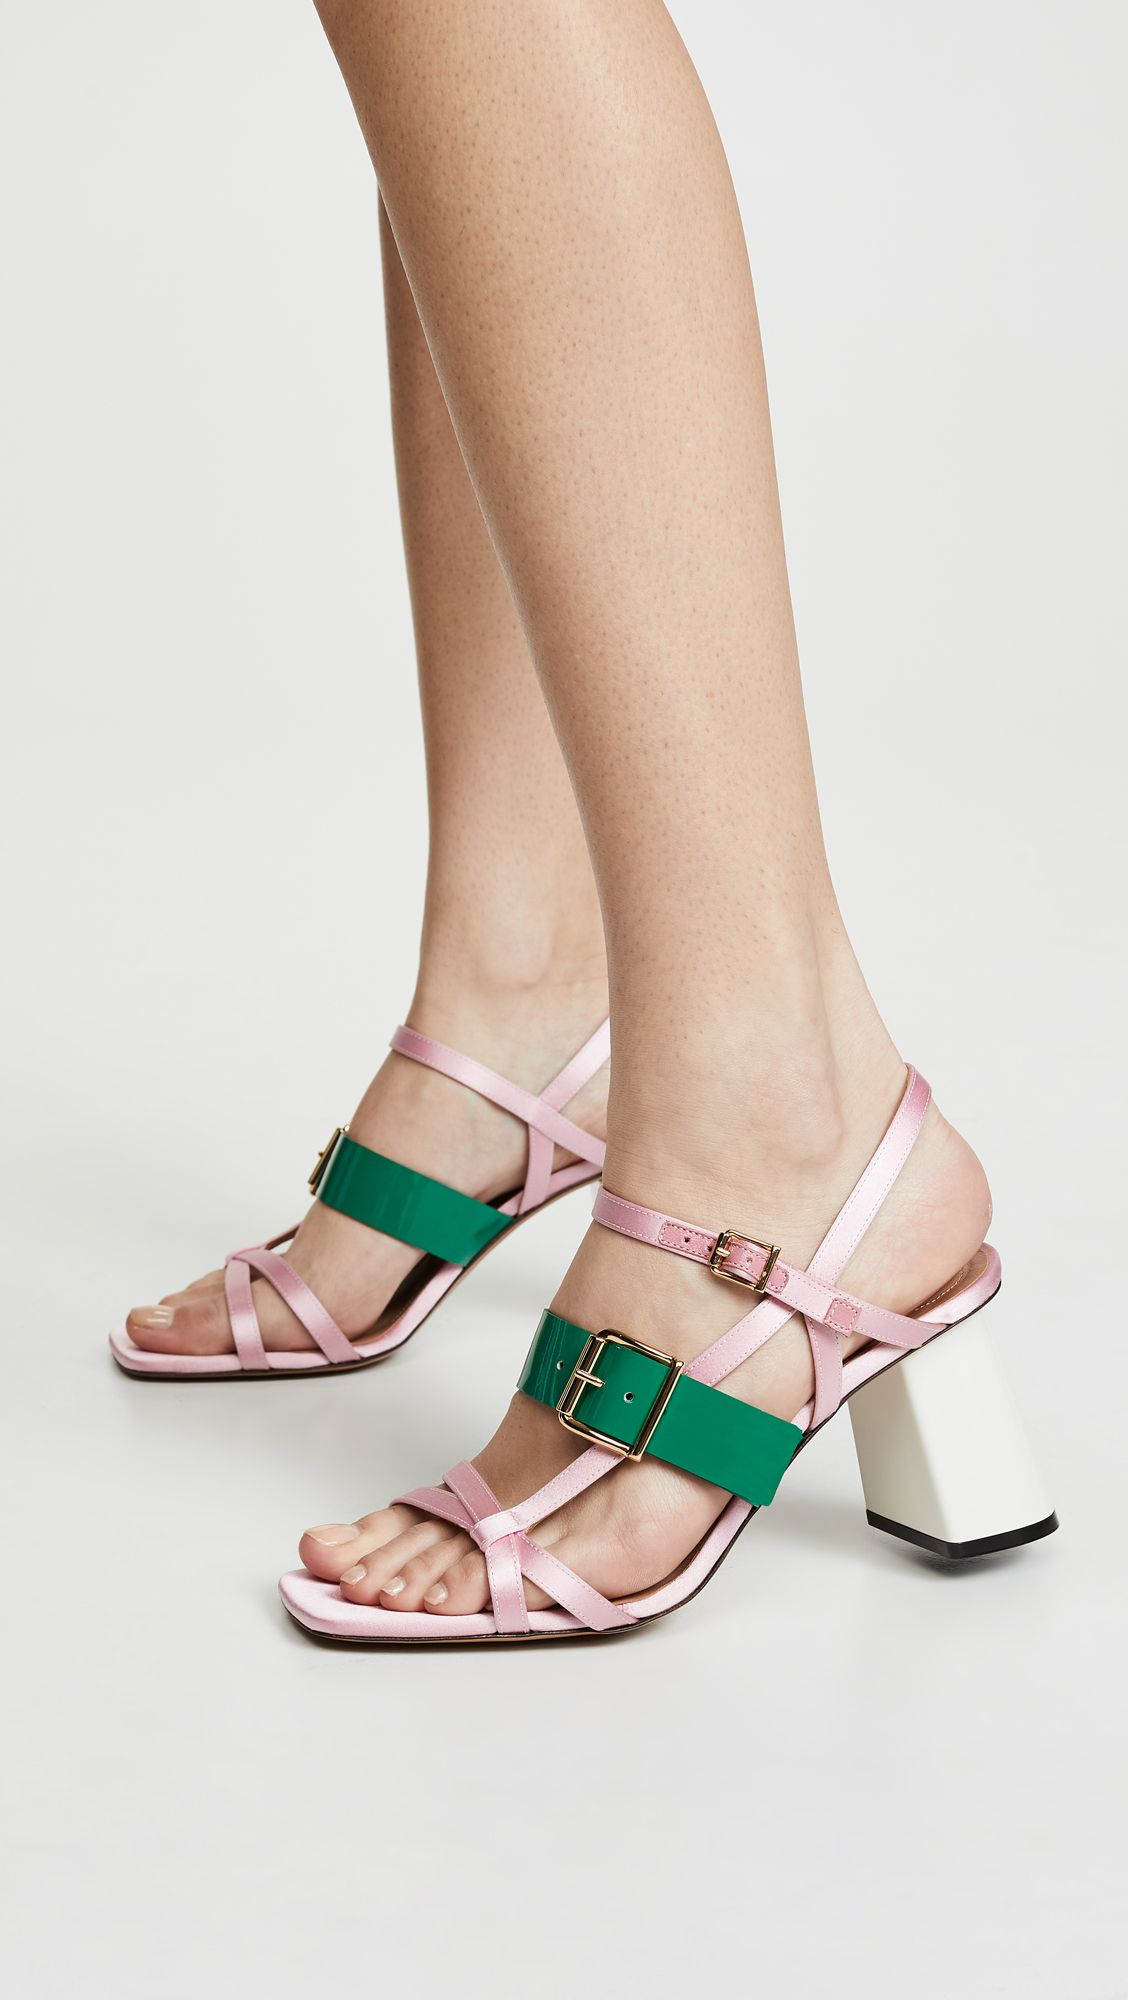 marni shoes online